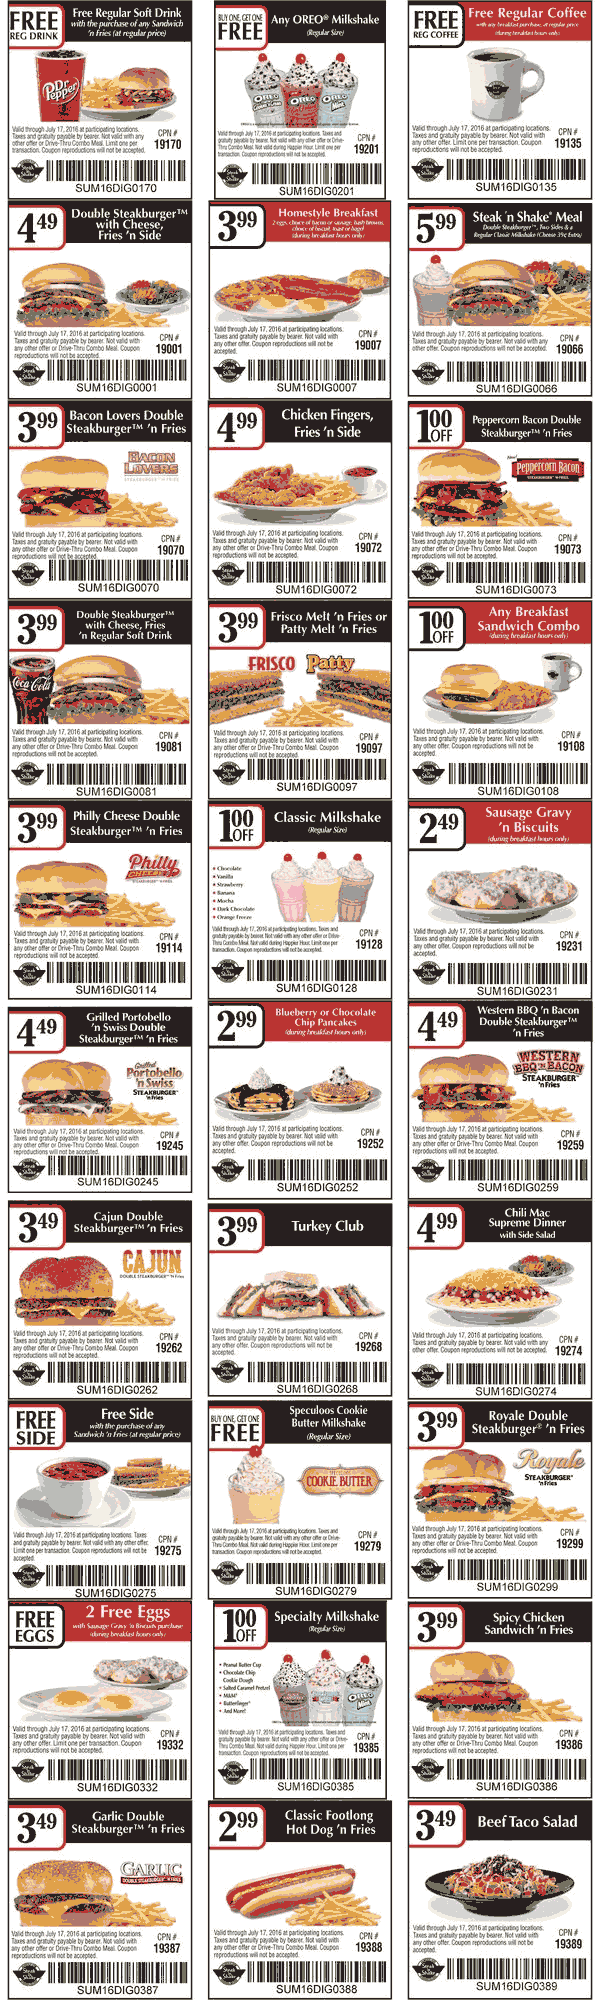 Steak n Shake Coupon November 2017 Various meal coupons for Steak n Shake restaurants